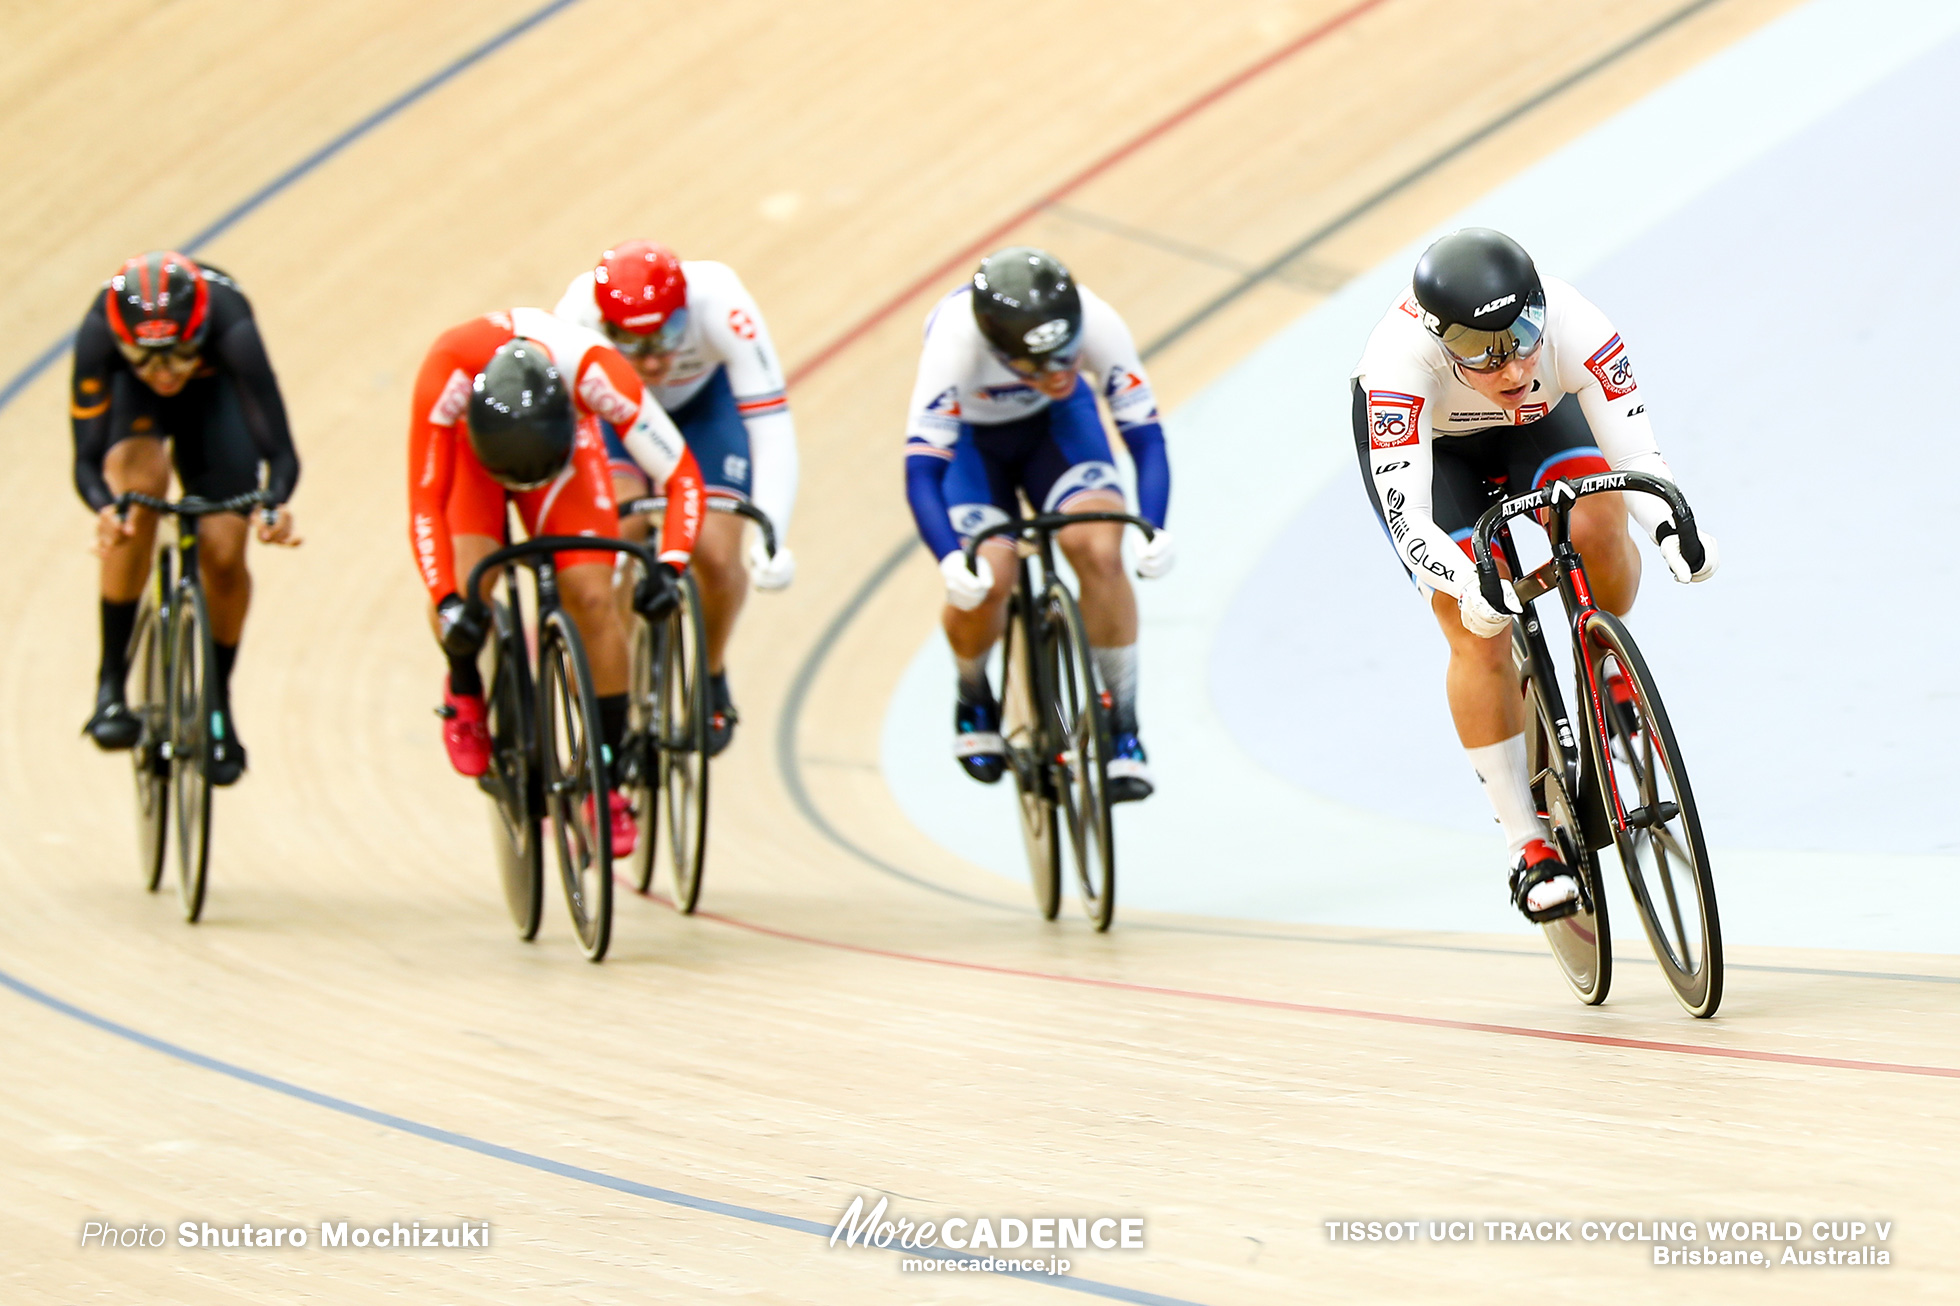 Repechage / Women's Keirin / TISSOT UCI TRACK CYCLING WORLD CUP V, Brisbane, Australia